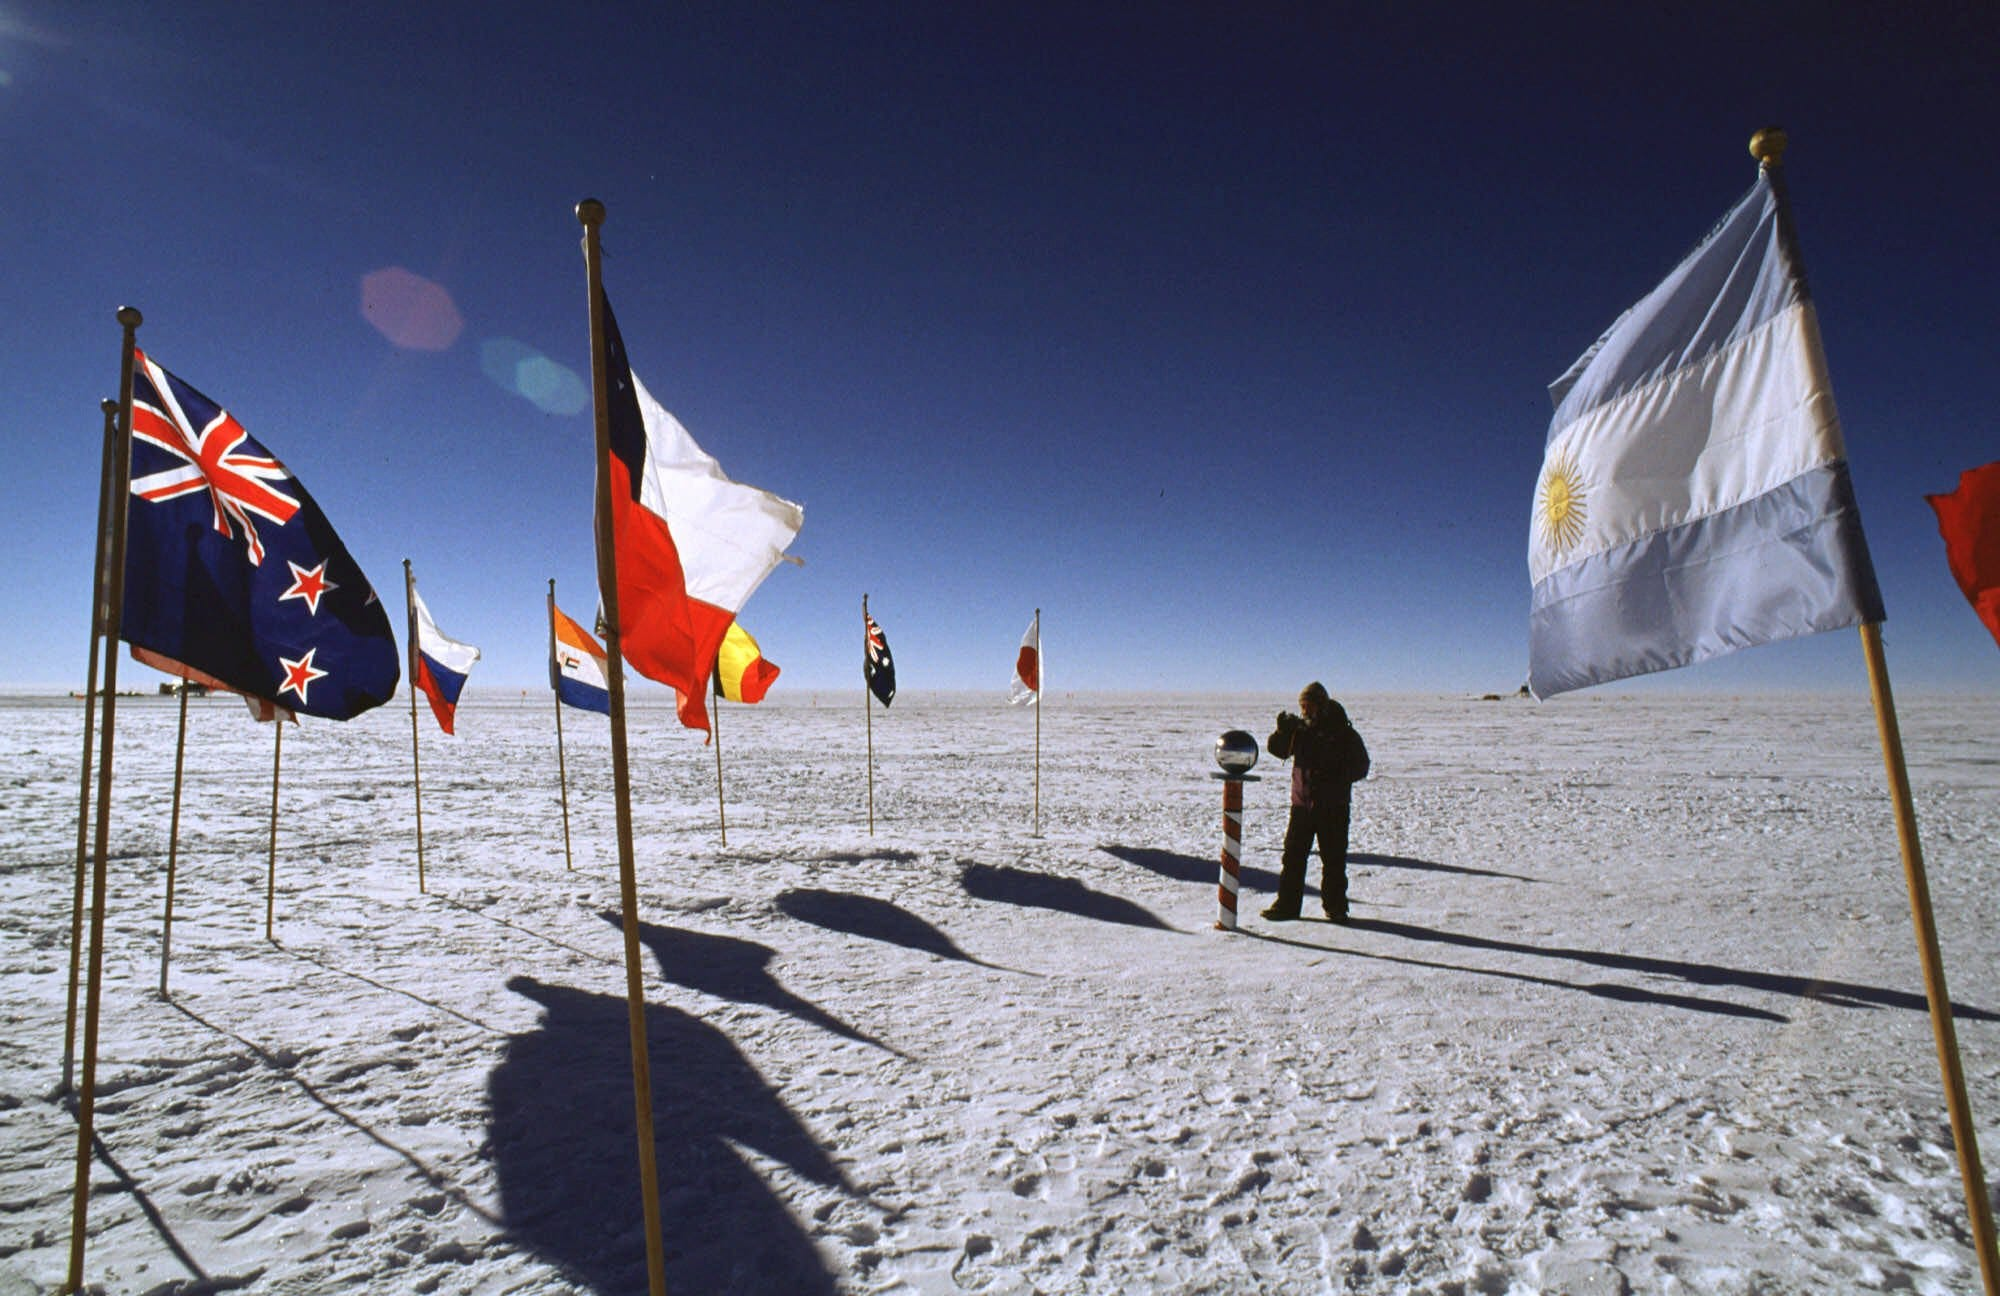 Researchers discover record warming at the South Pole over the past 3 decades